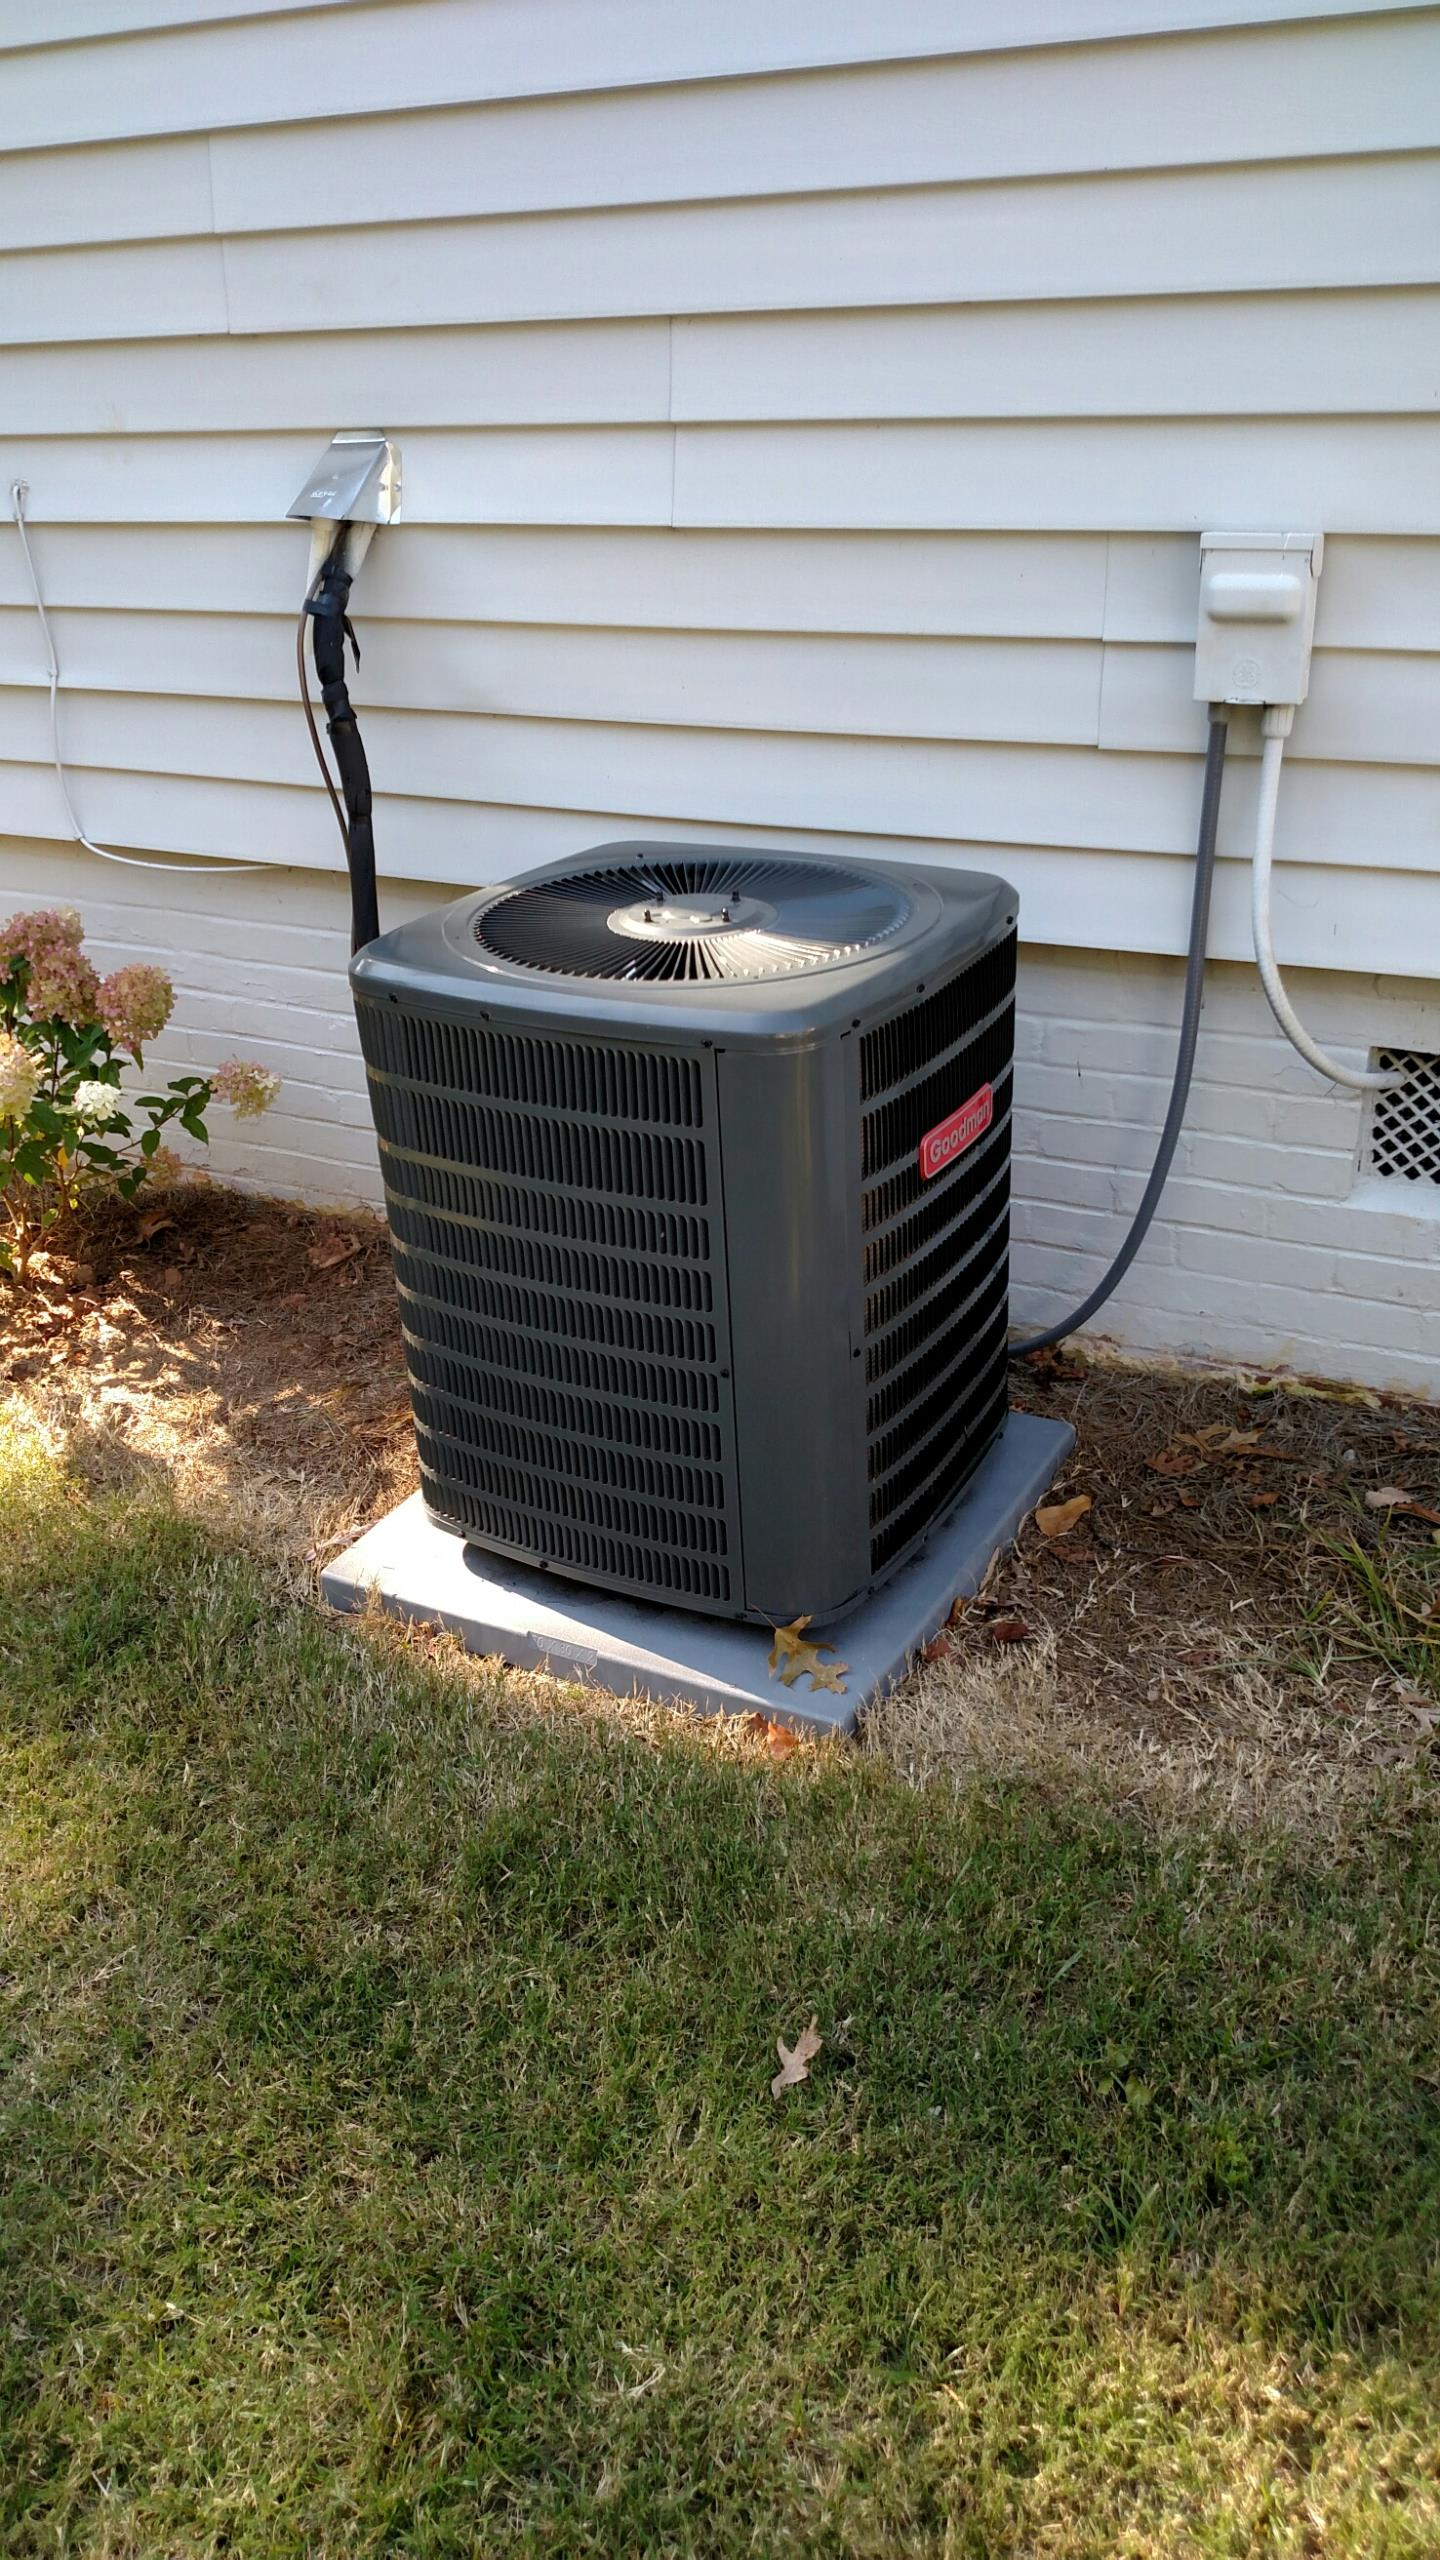 Sugar Hill, GA - Performed a heating check on Goodman heat pump. We are going to add a compressor jacket to help with noise.